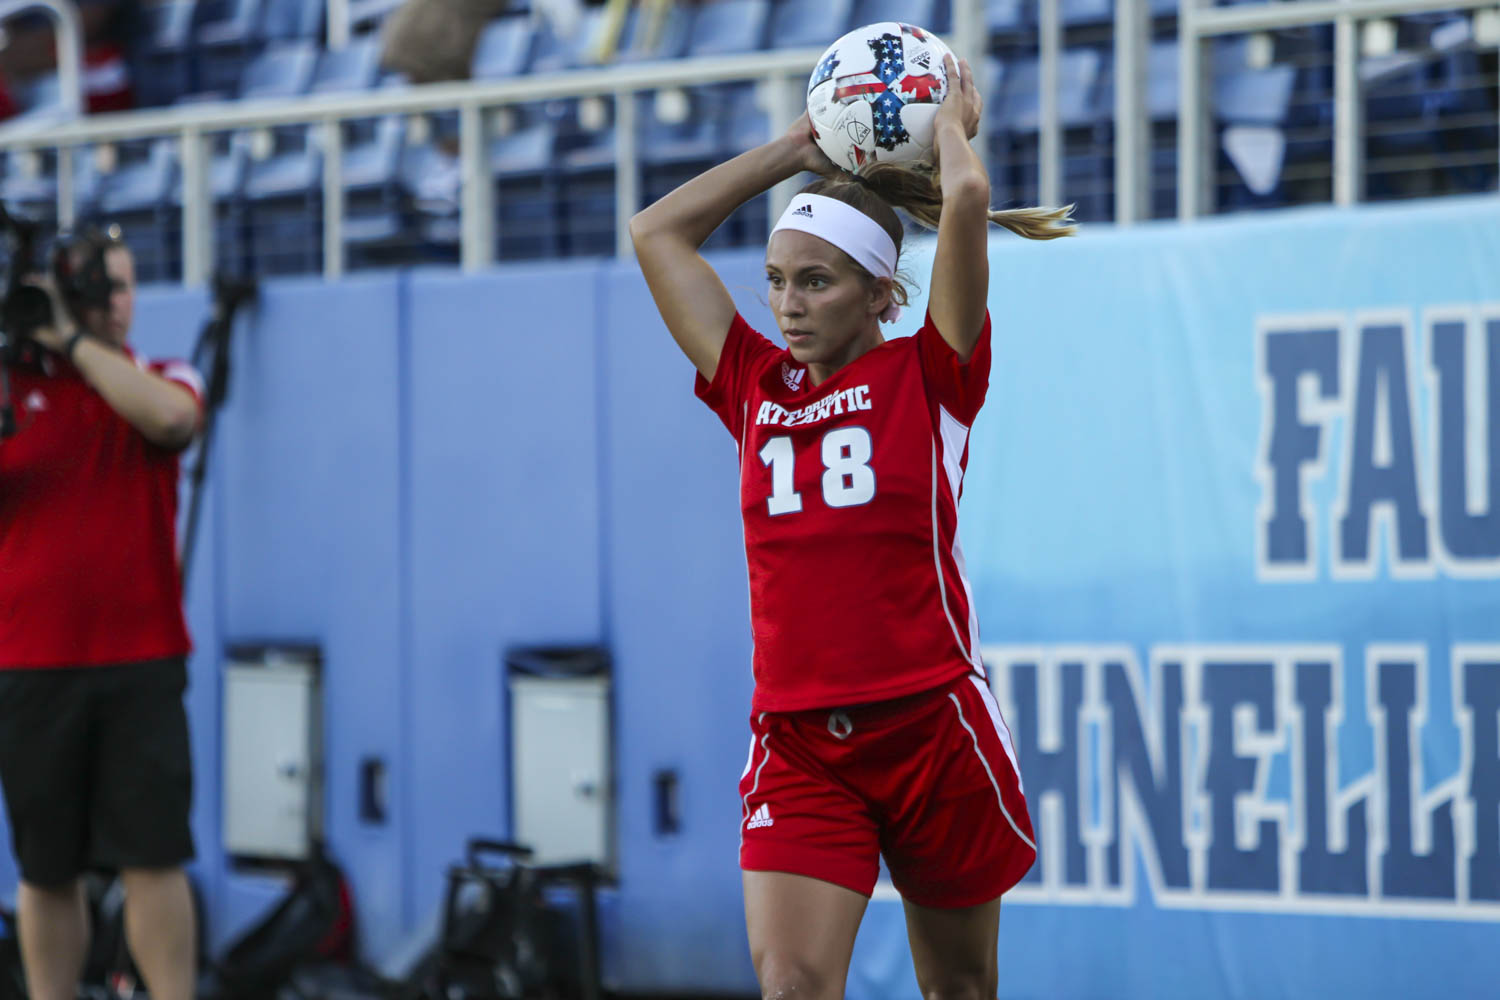 FAU+defender+Madison+Caldwell+%2818%29+tosses+the+ball+during+a+free+throw+in+Saturday%E2%80%99s+loss.++Alexander+Rodriguez+%7C+Photo+Editor